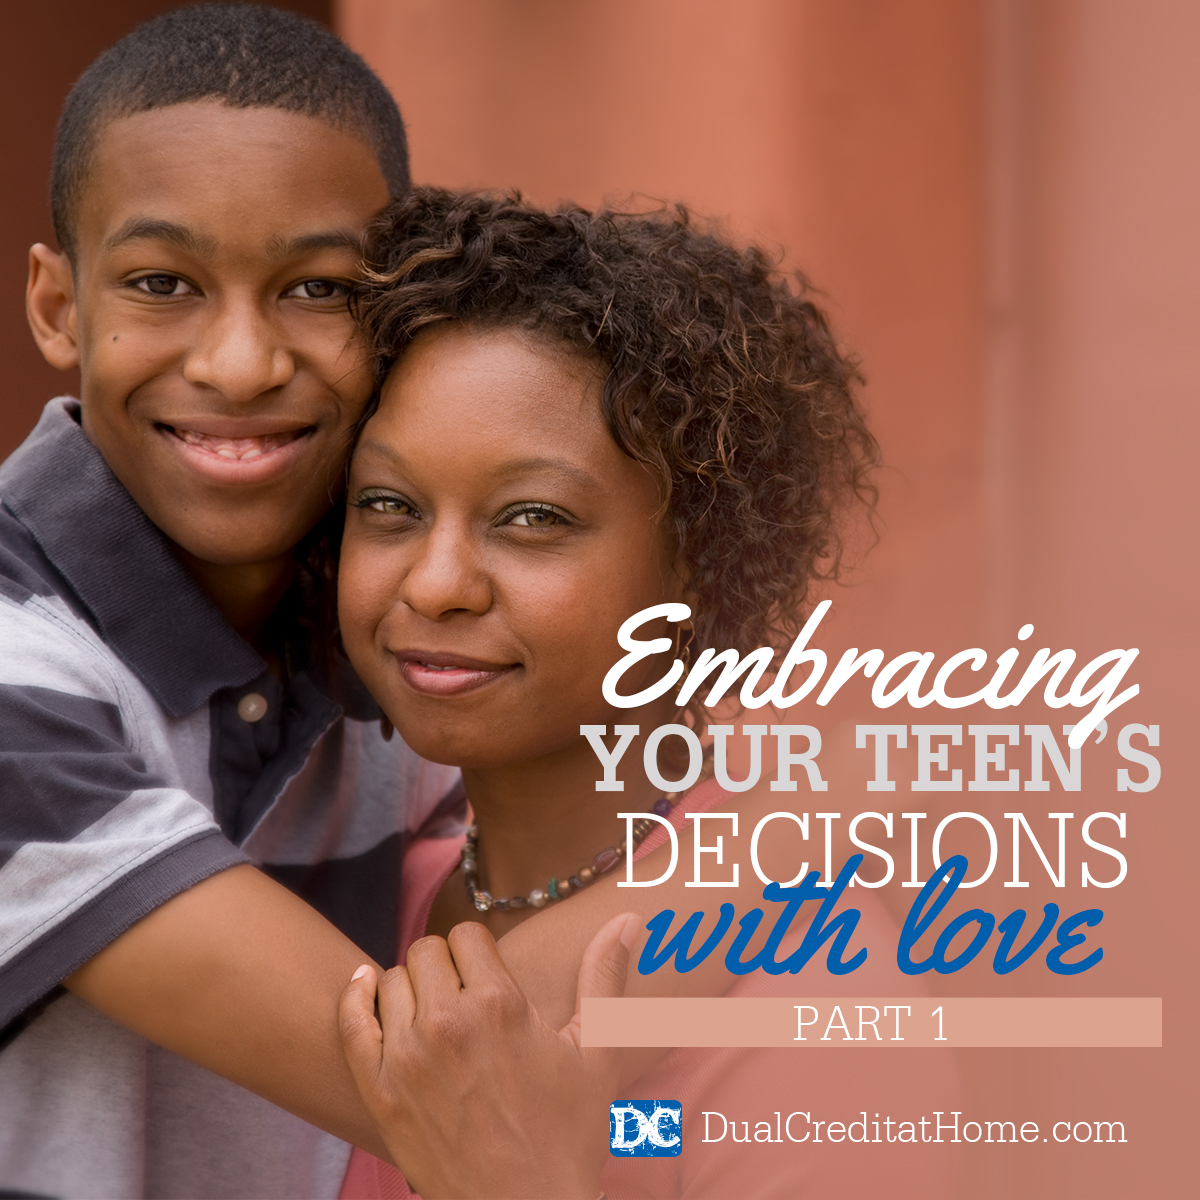 Embracing Your Teen's Decisions with Love - Part 1, Let's Prepare